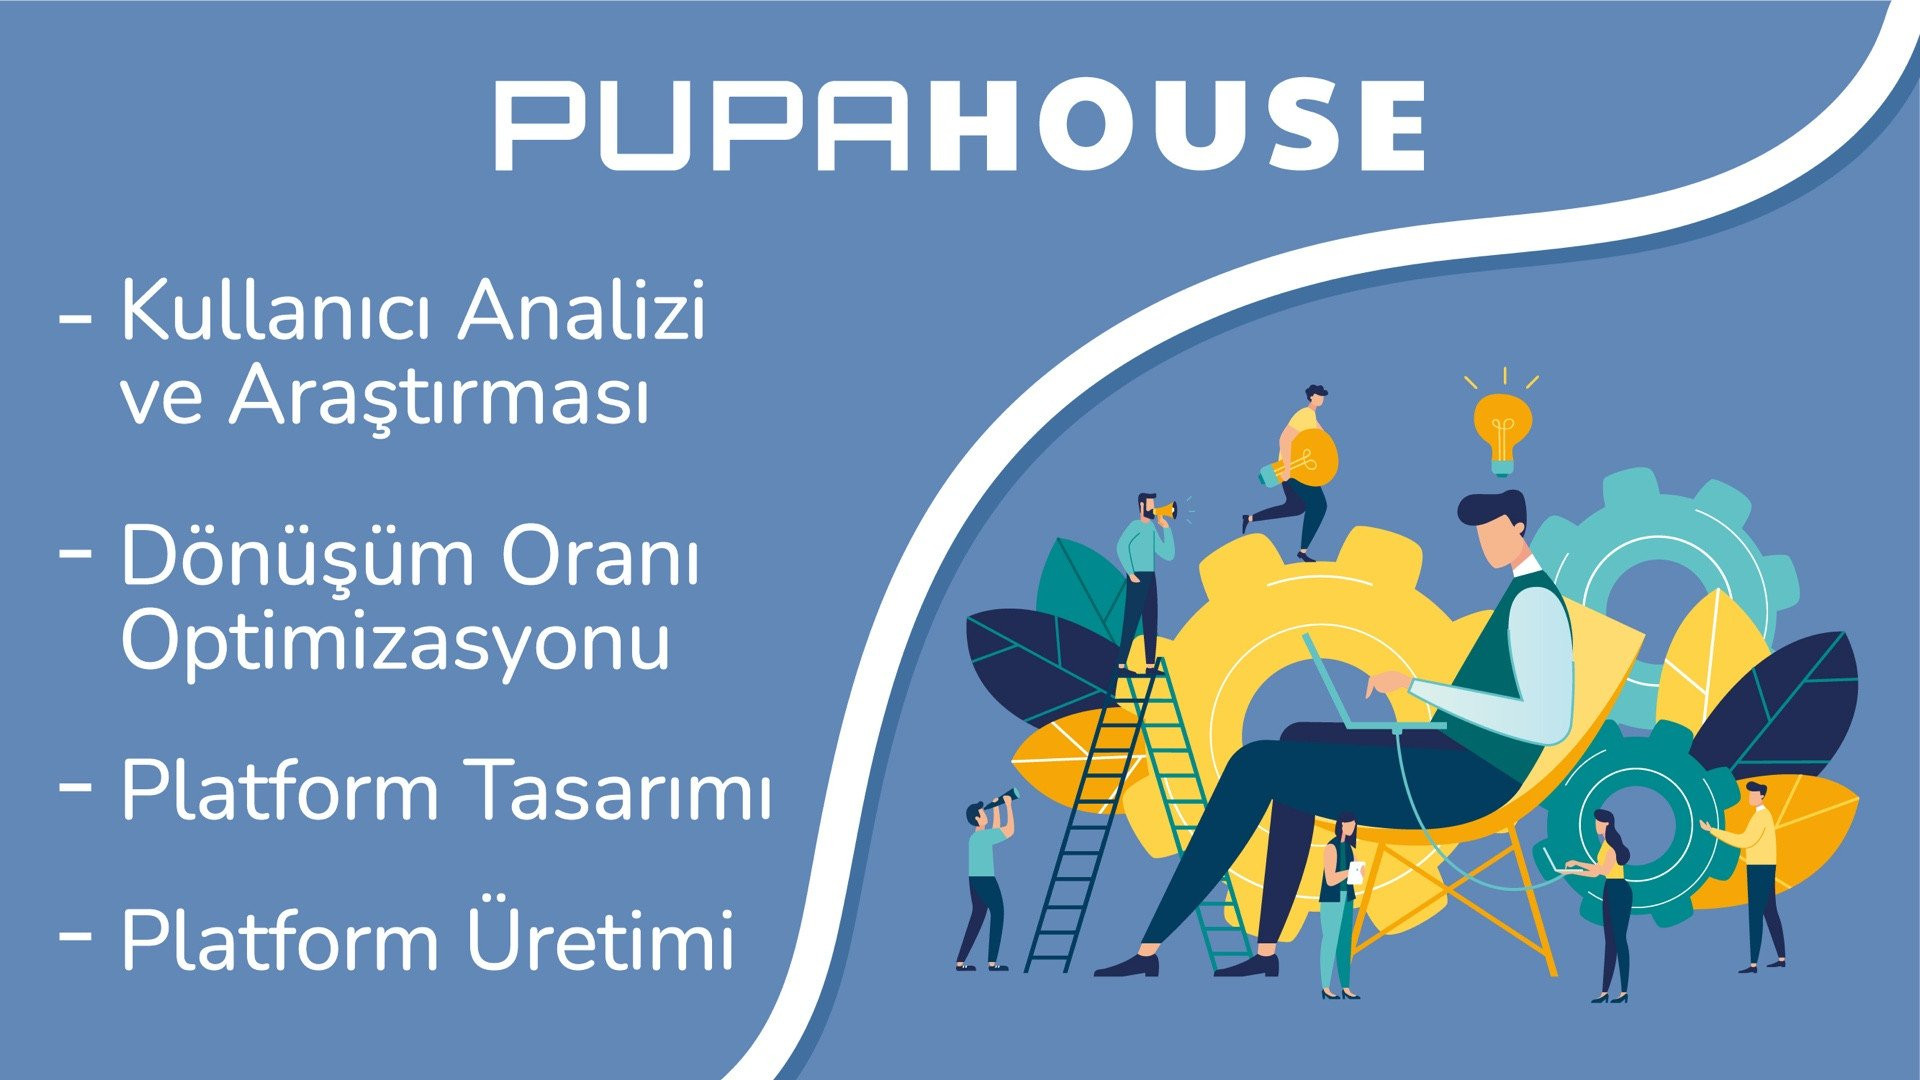 PupaHouse uzman ekibiyle Dijital İş Tasarımı hizmetlerini arttırdı